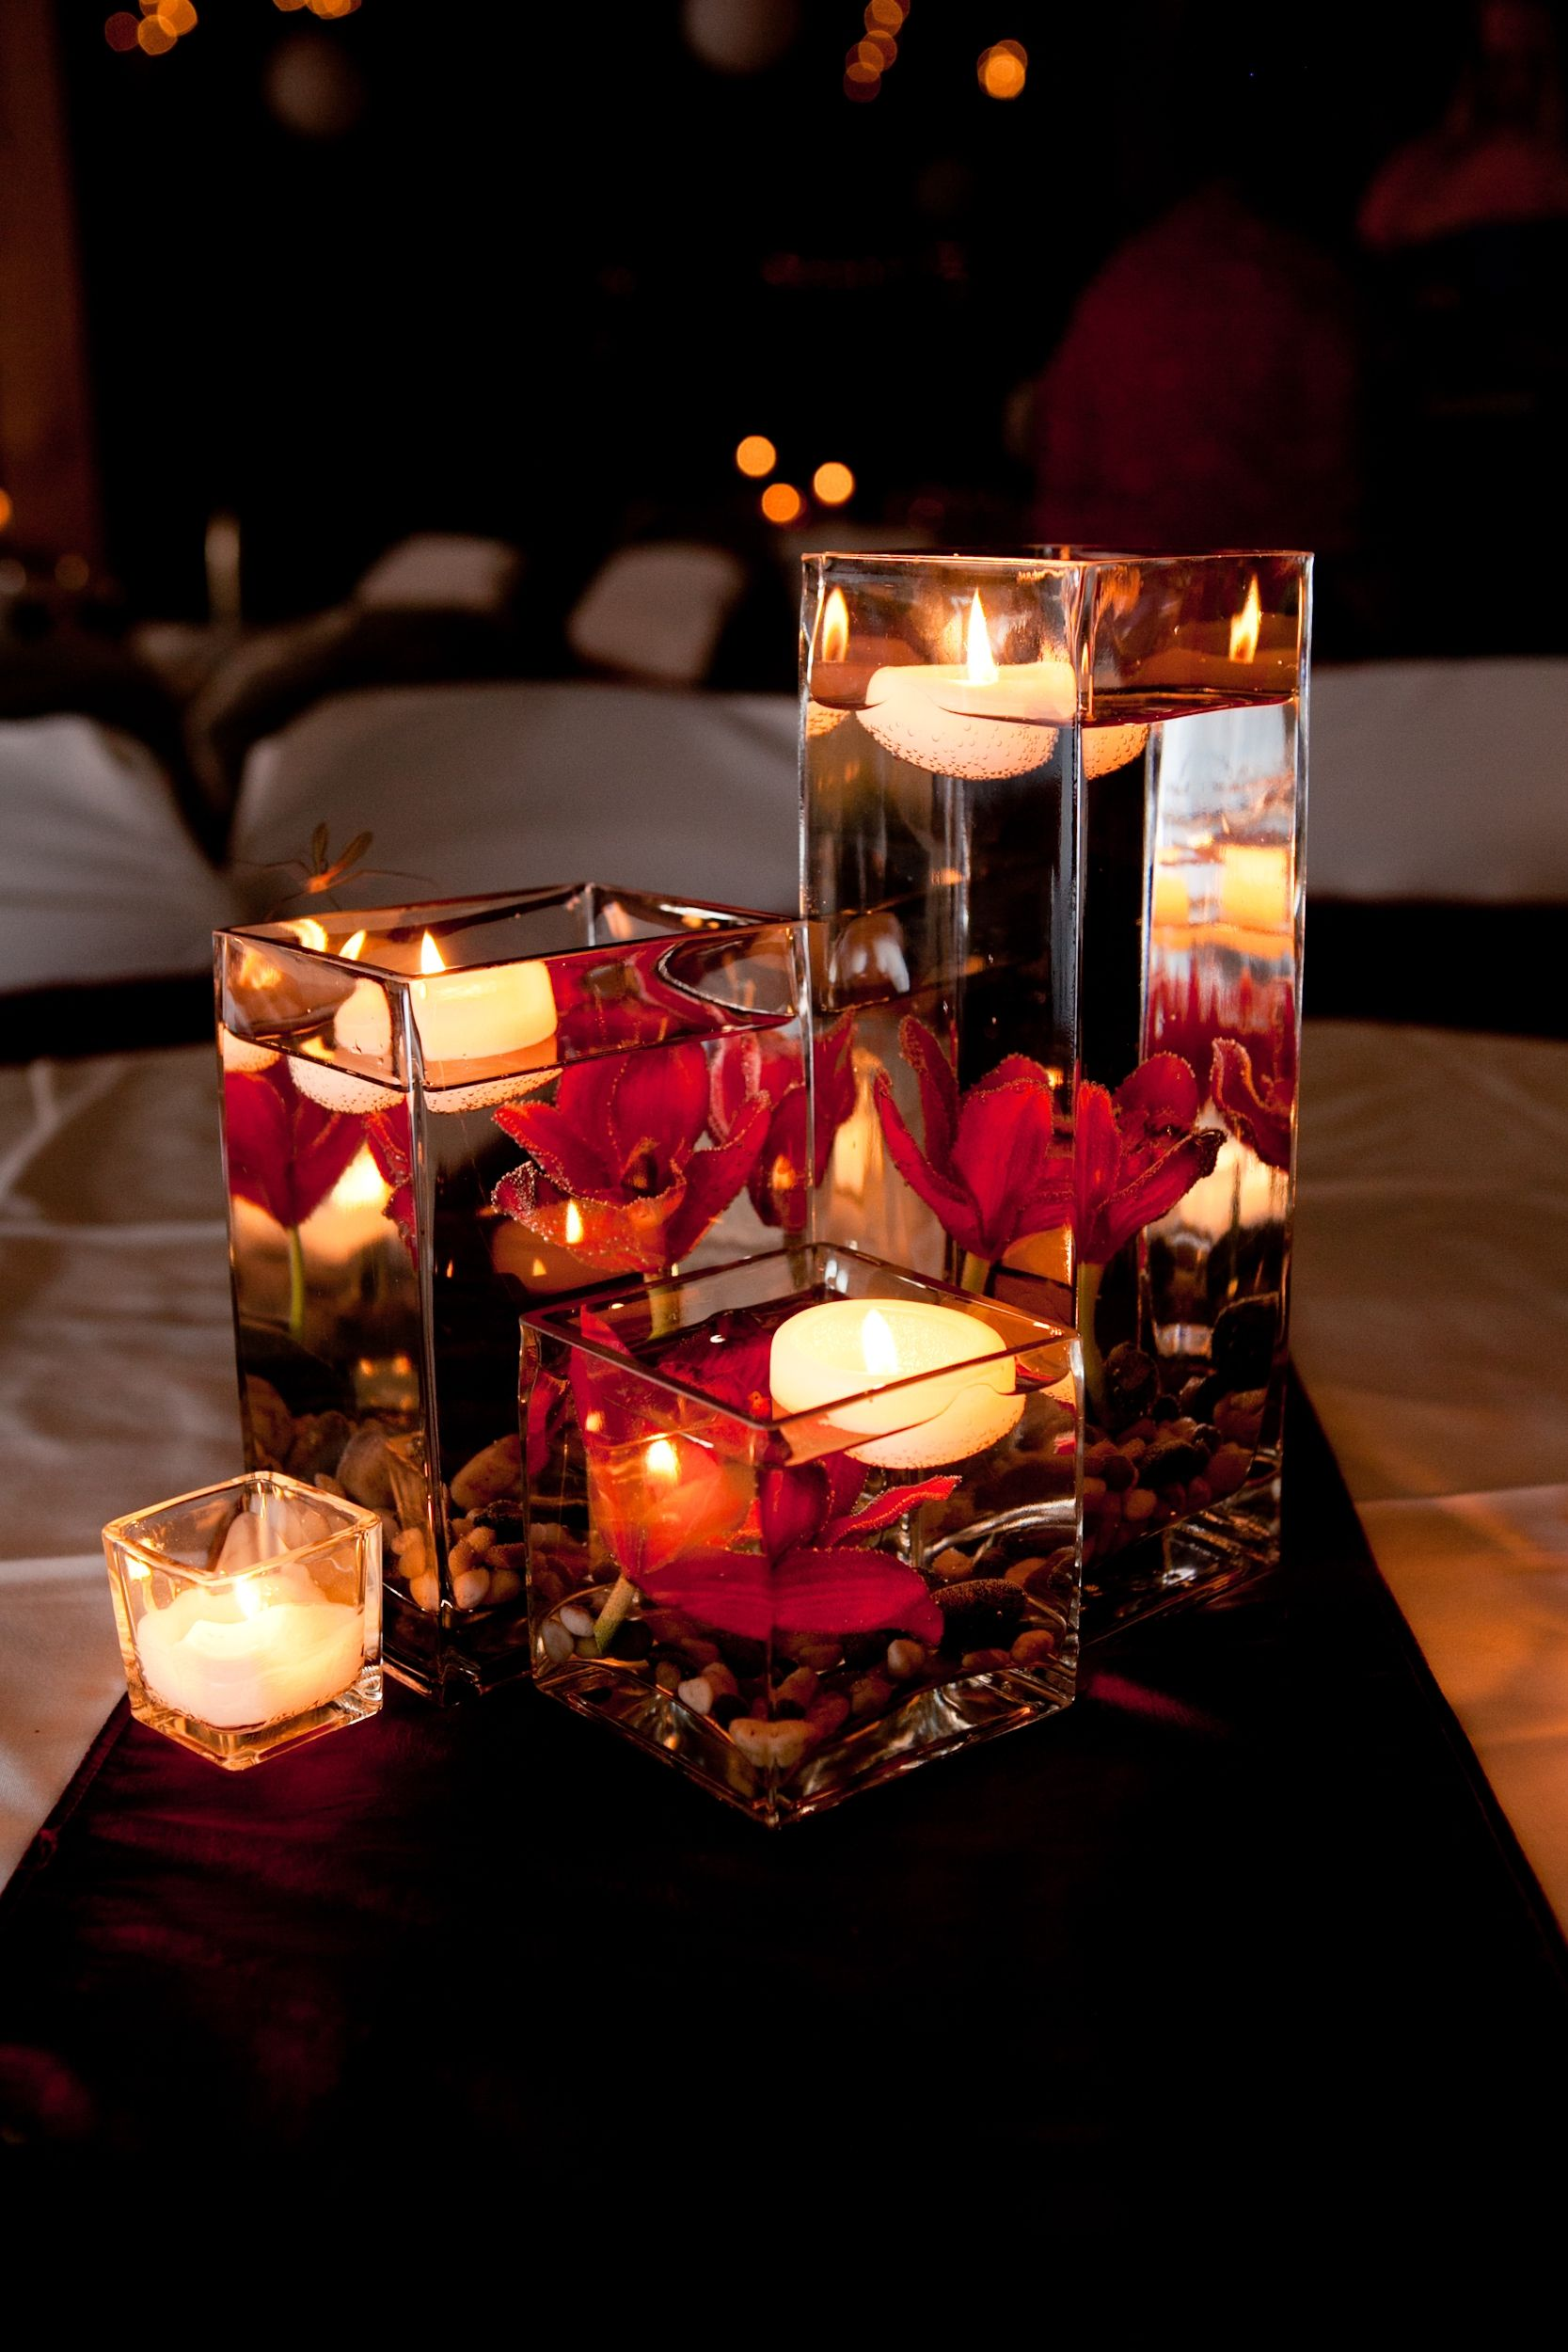 cranberry centerpieces for weddings | ...  SFU Weddings Burnaby Wedding Cranberry WeddingTimeless Wedding & Top 40 Most Pinteresting Christmas Candle Decoration Ideas | Jerryu0027s ...